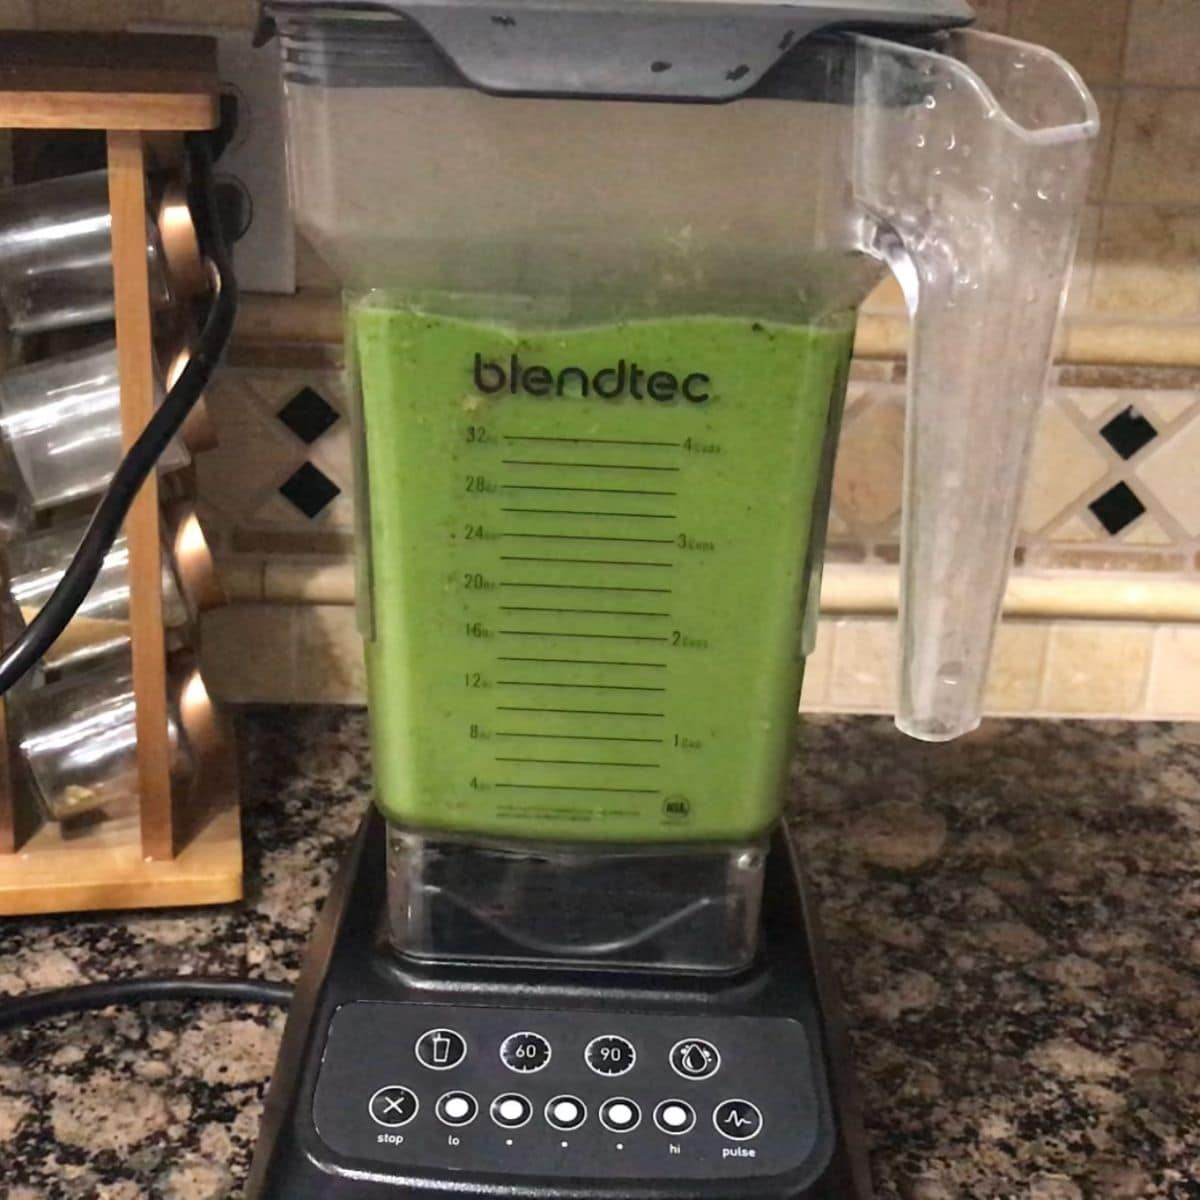 A blender filled with spinach and boiled potatoes